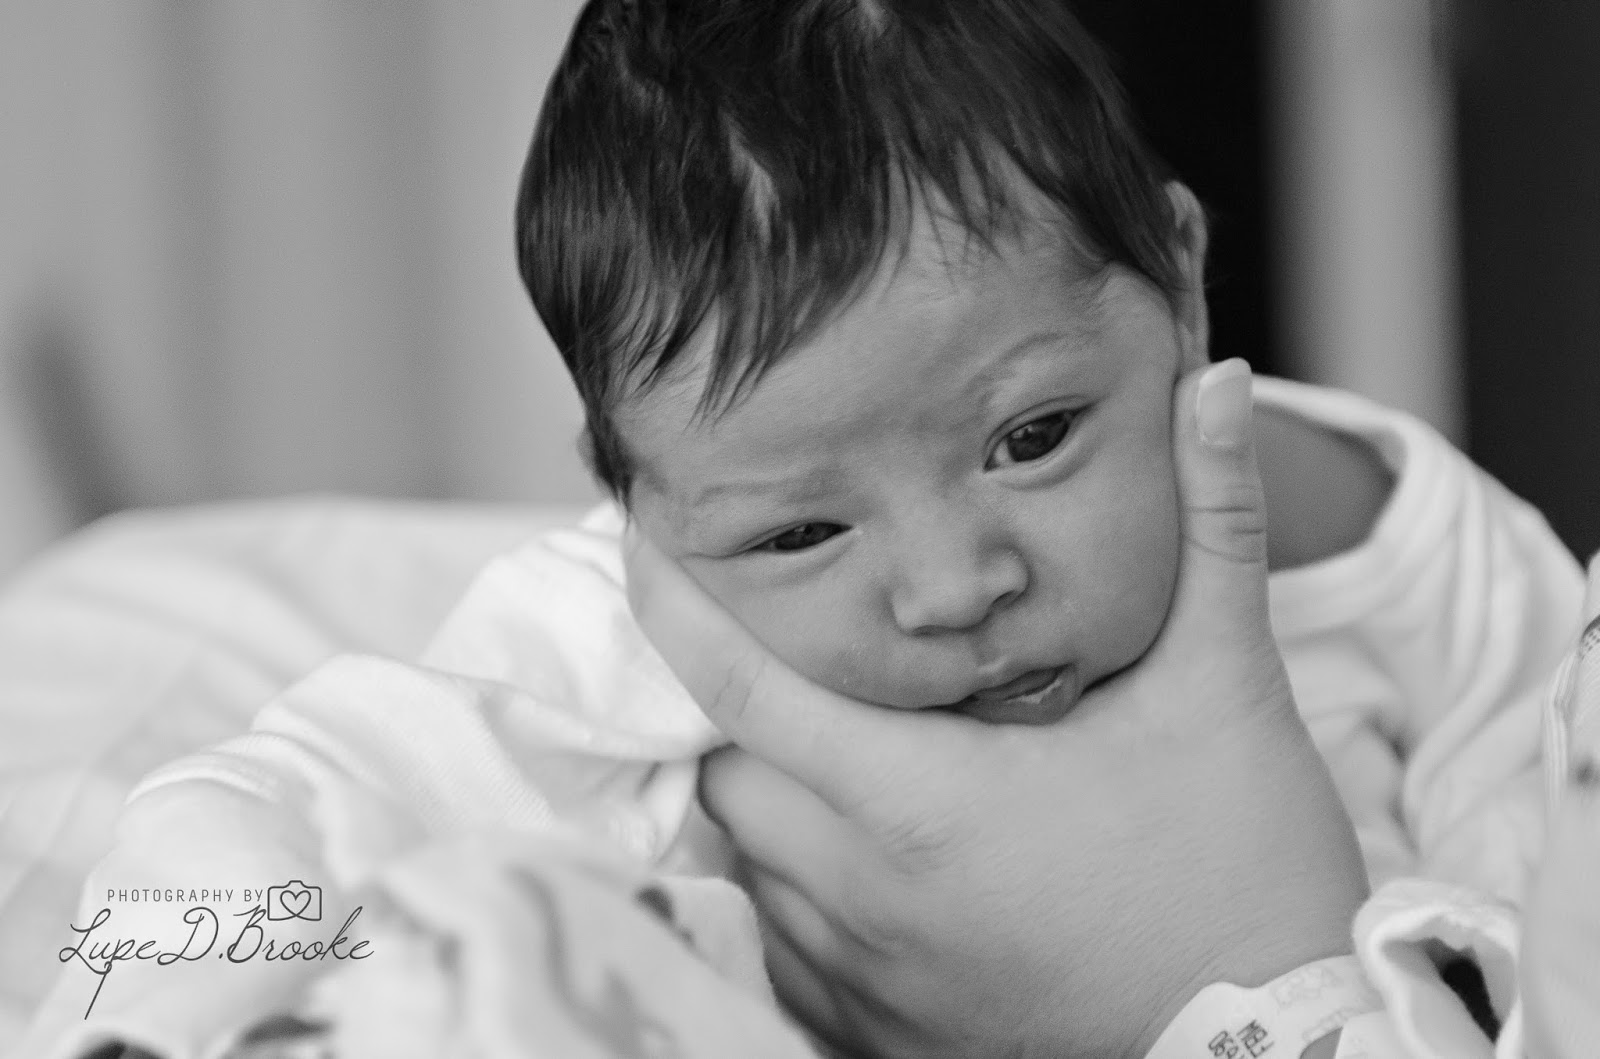 She was such a good baby for these shots shes going to love the camera just as much